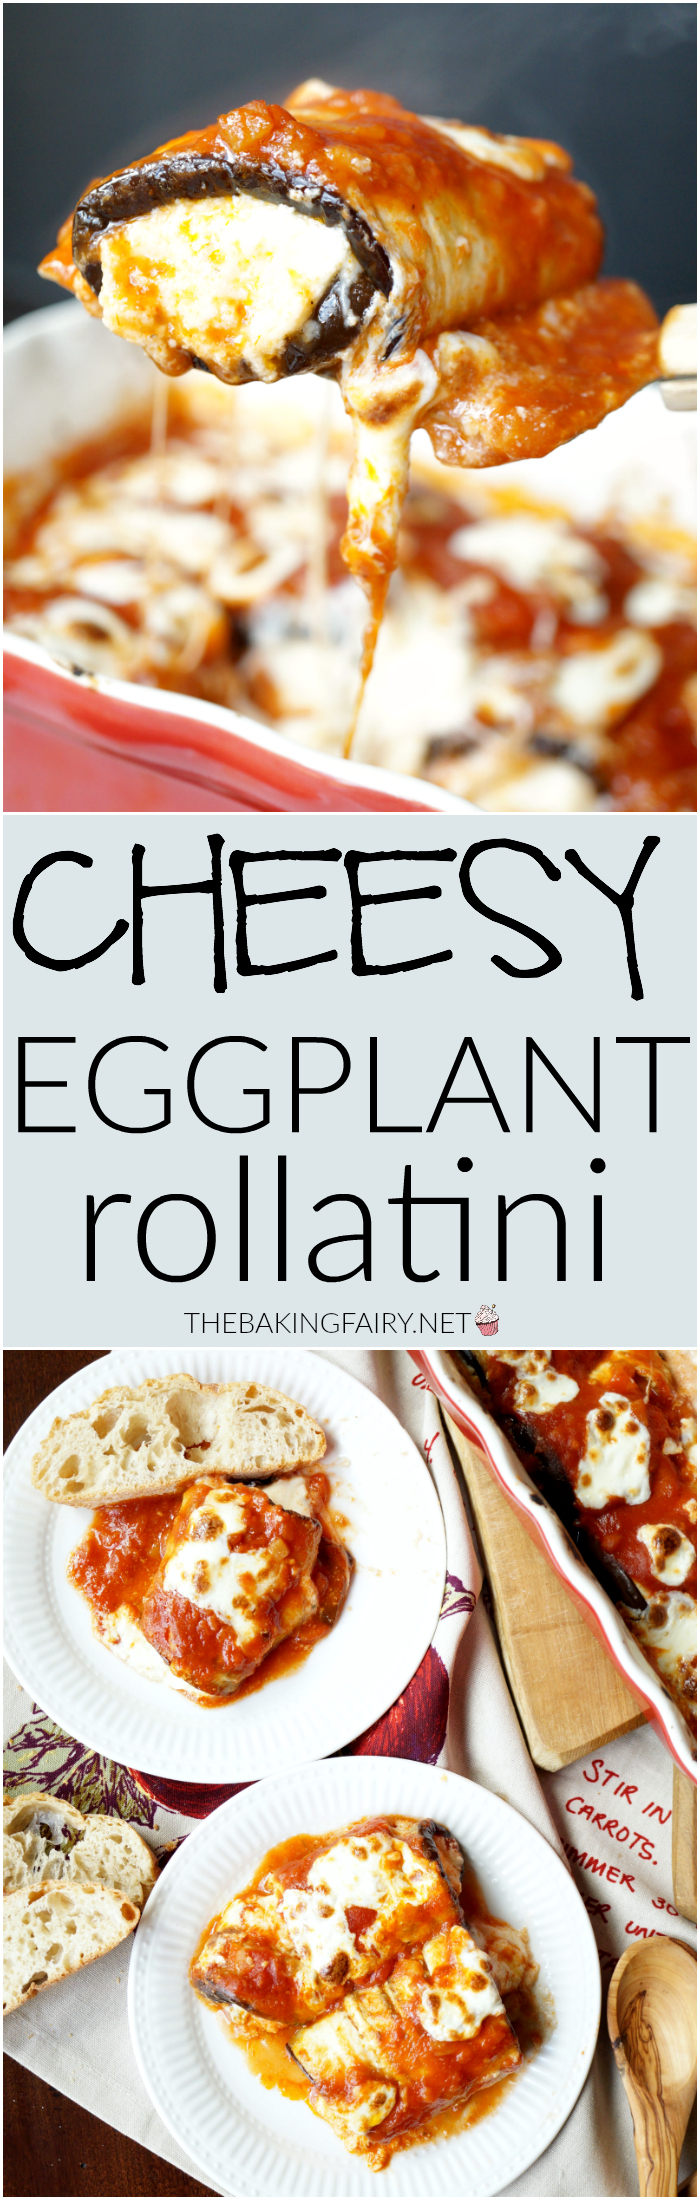 cheesy eggplant rollatini | The Baking Fairy